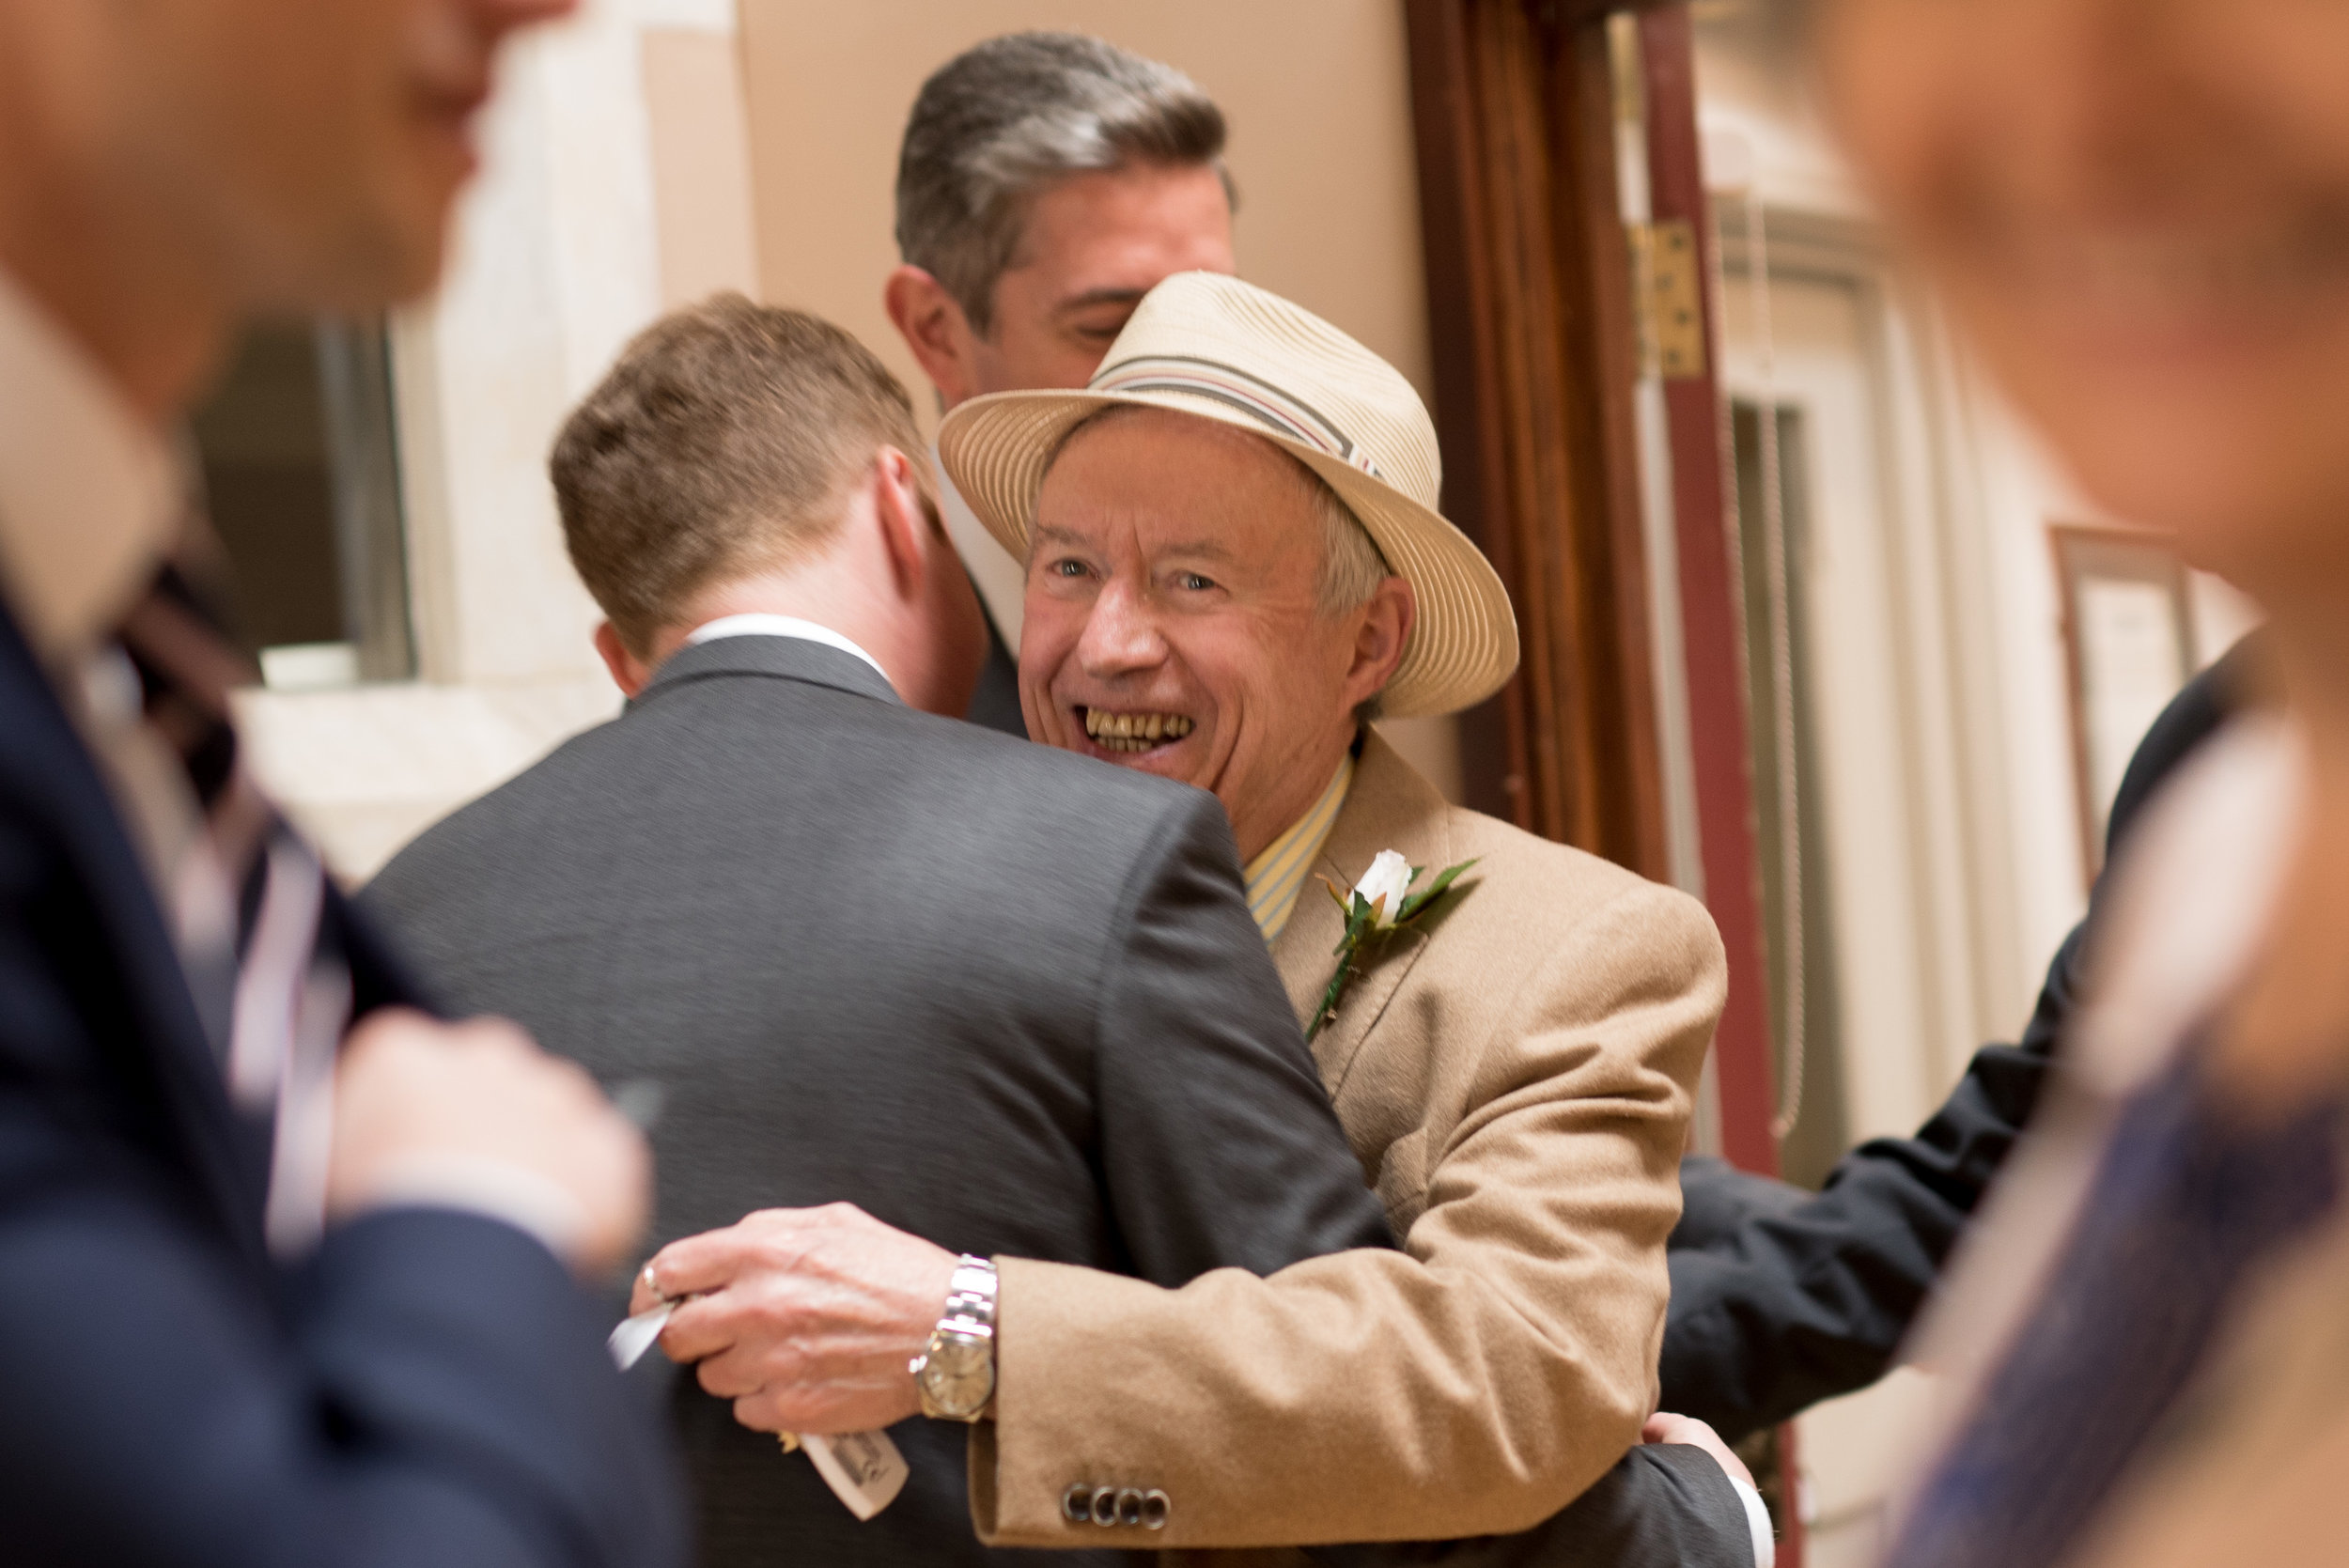 Groom embraces father on wedding day